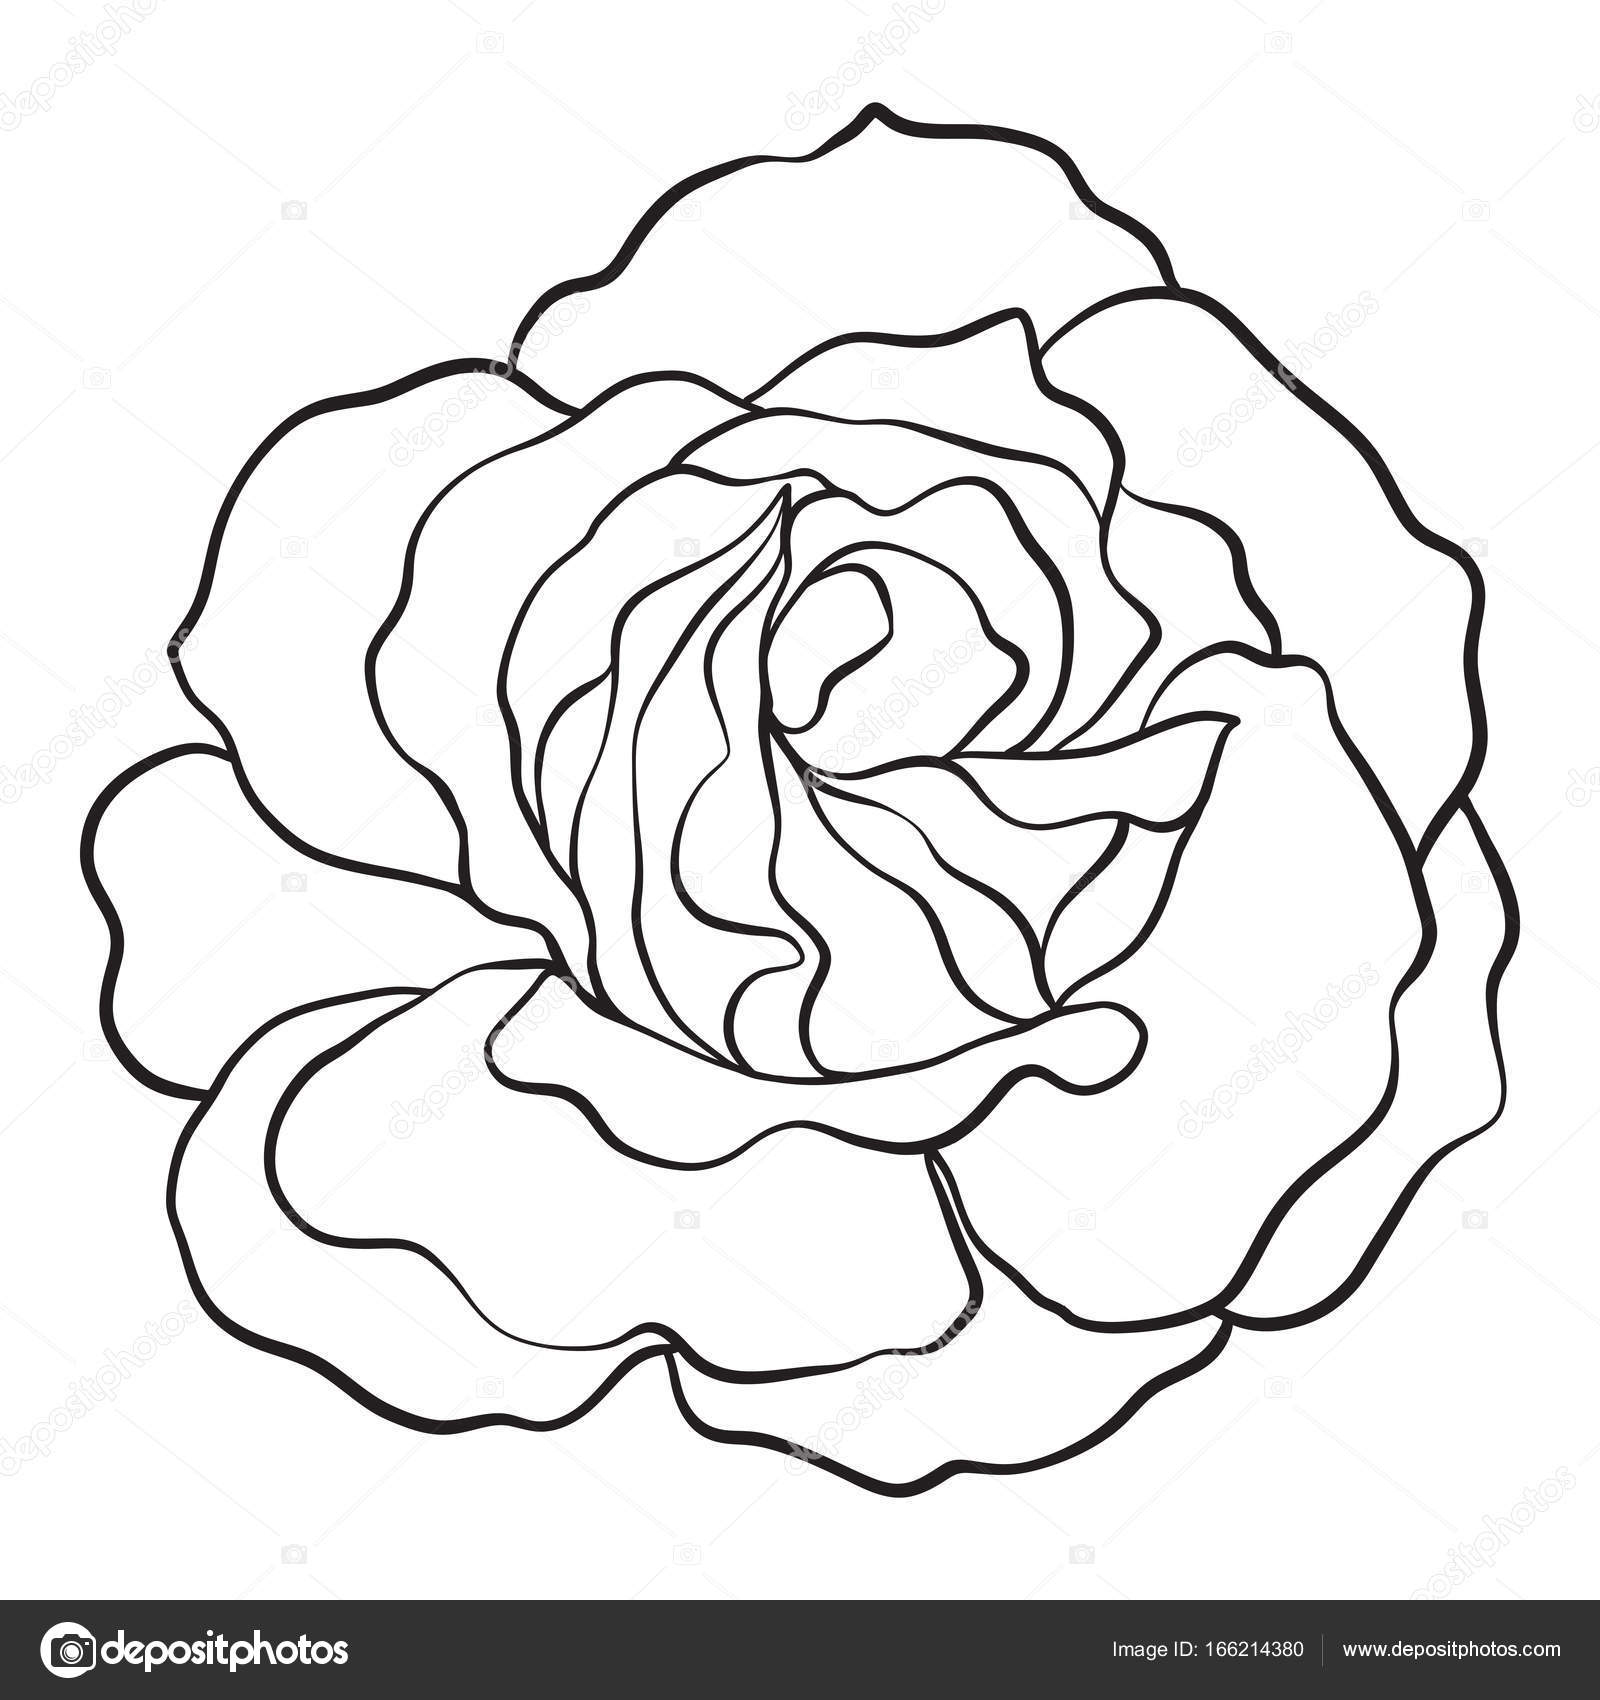 1600x1700 Isolated Rose. Outline Drawing. Stock Vector Illustration. Stock